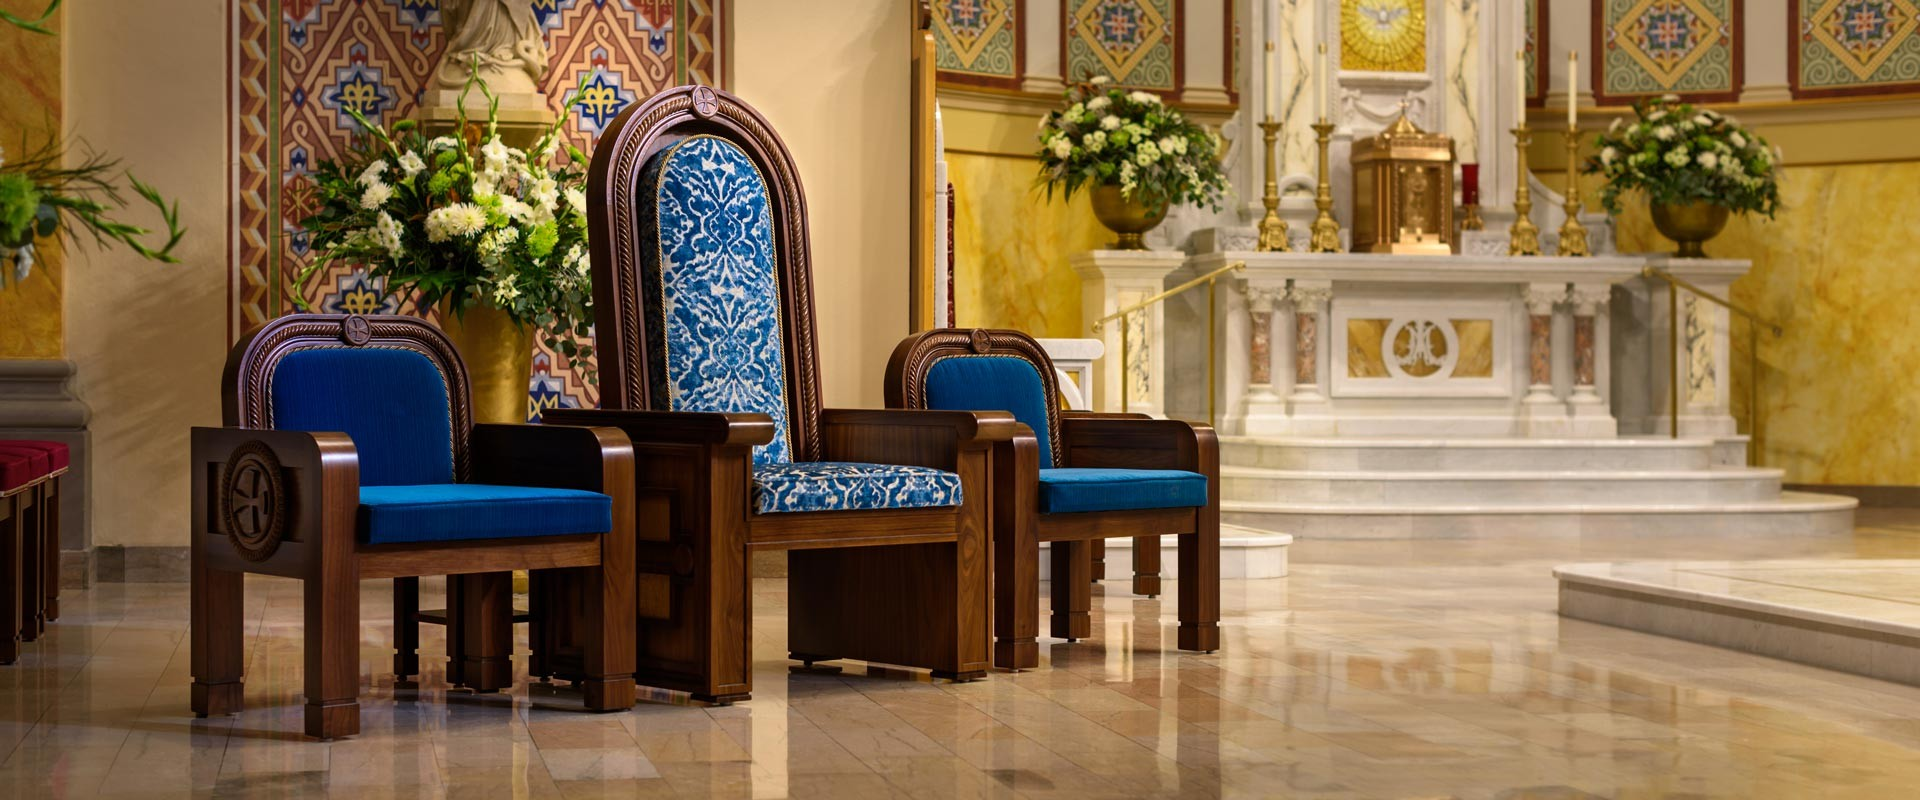 Our Lady of Perpetual Help Oklahoma chairs